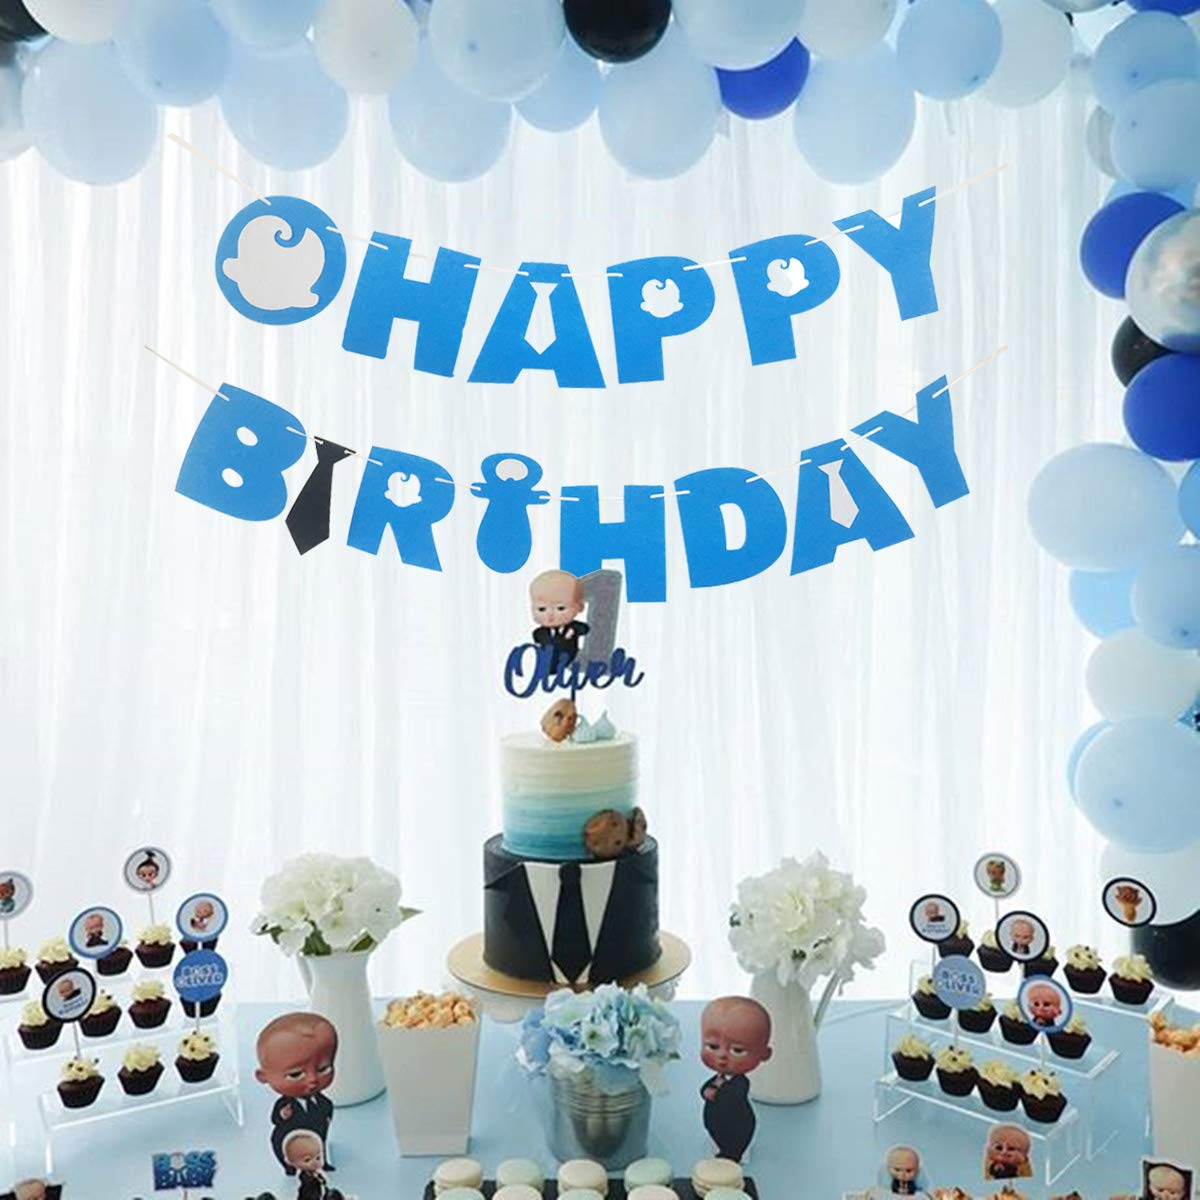 Boss Baby Birthday Banner Party Supplies For Kids Birthday Party Decorations Party supplies